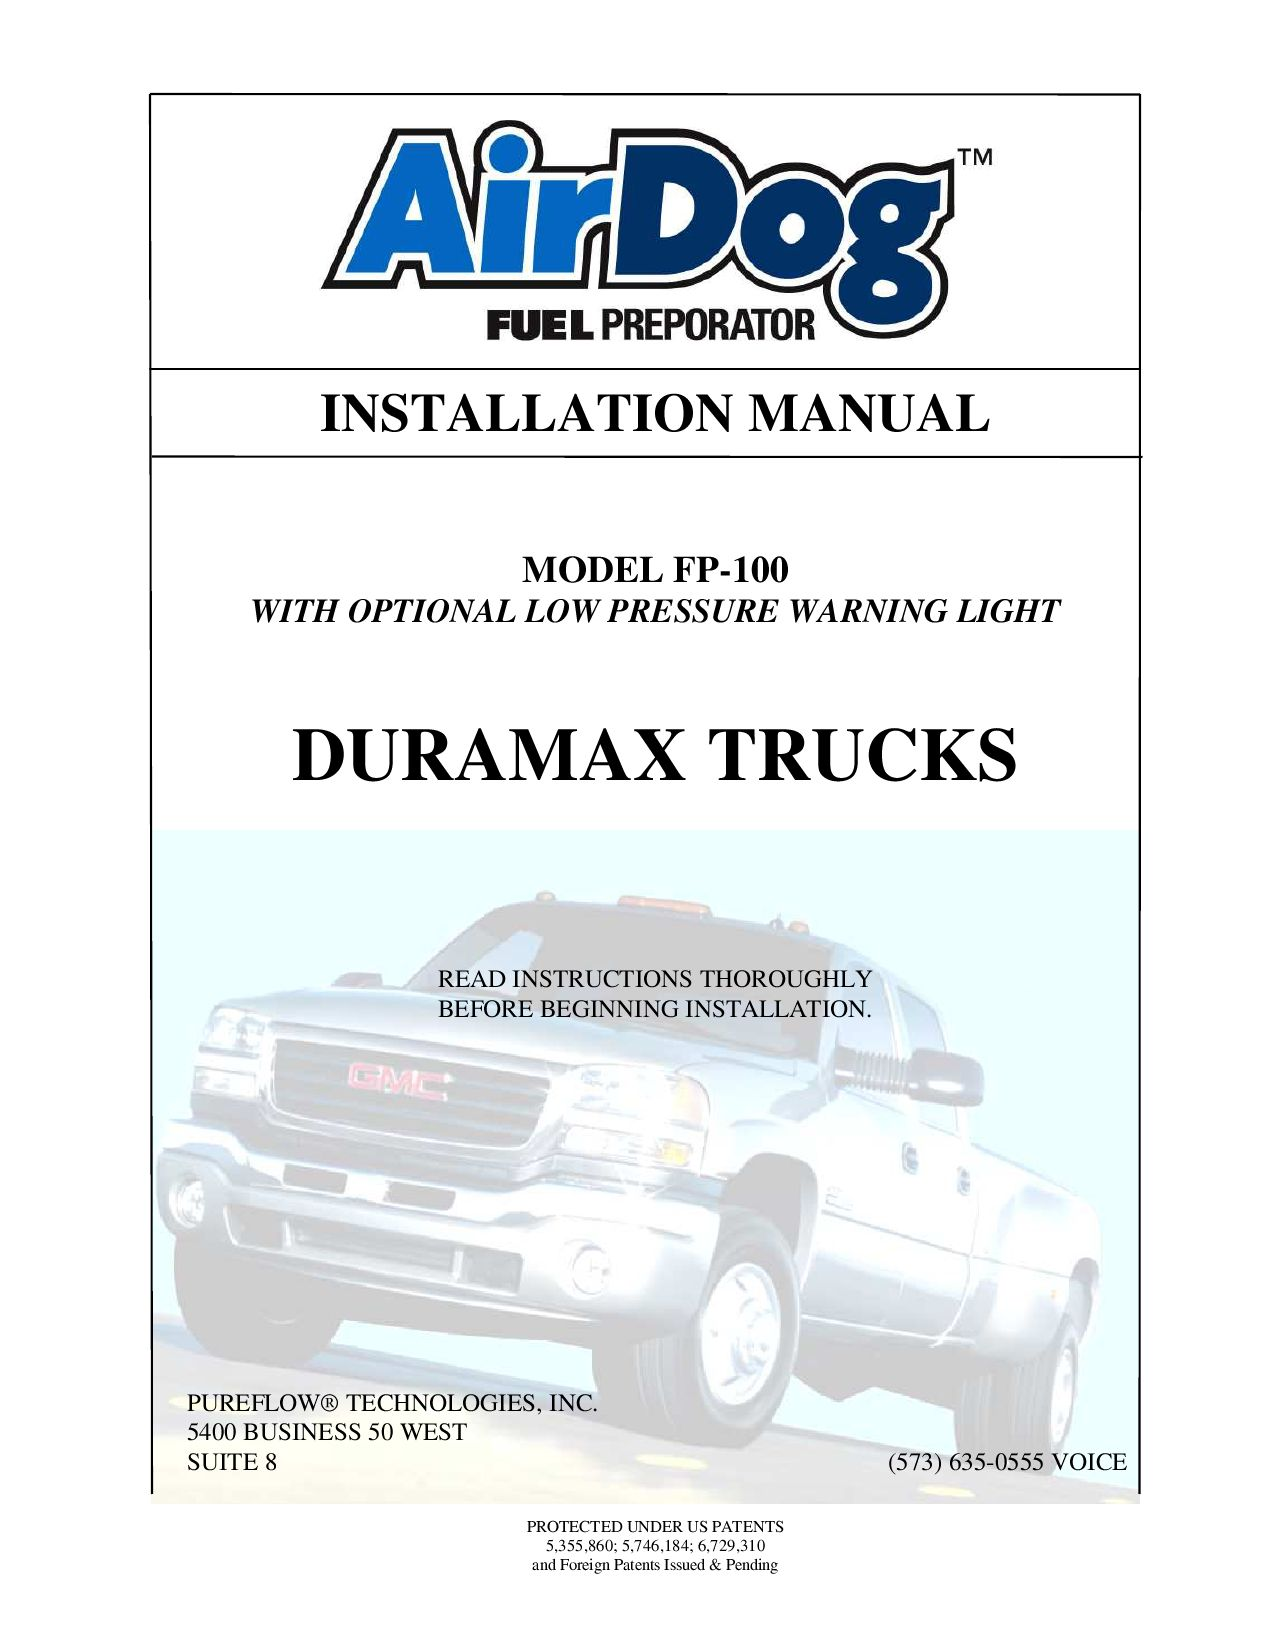 Duramax Diesel Truck Air Dog Fp 100 Install Manual By Bombers 01 Fuel Filter Housing Issuu